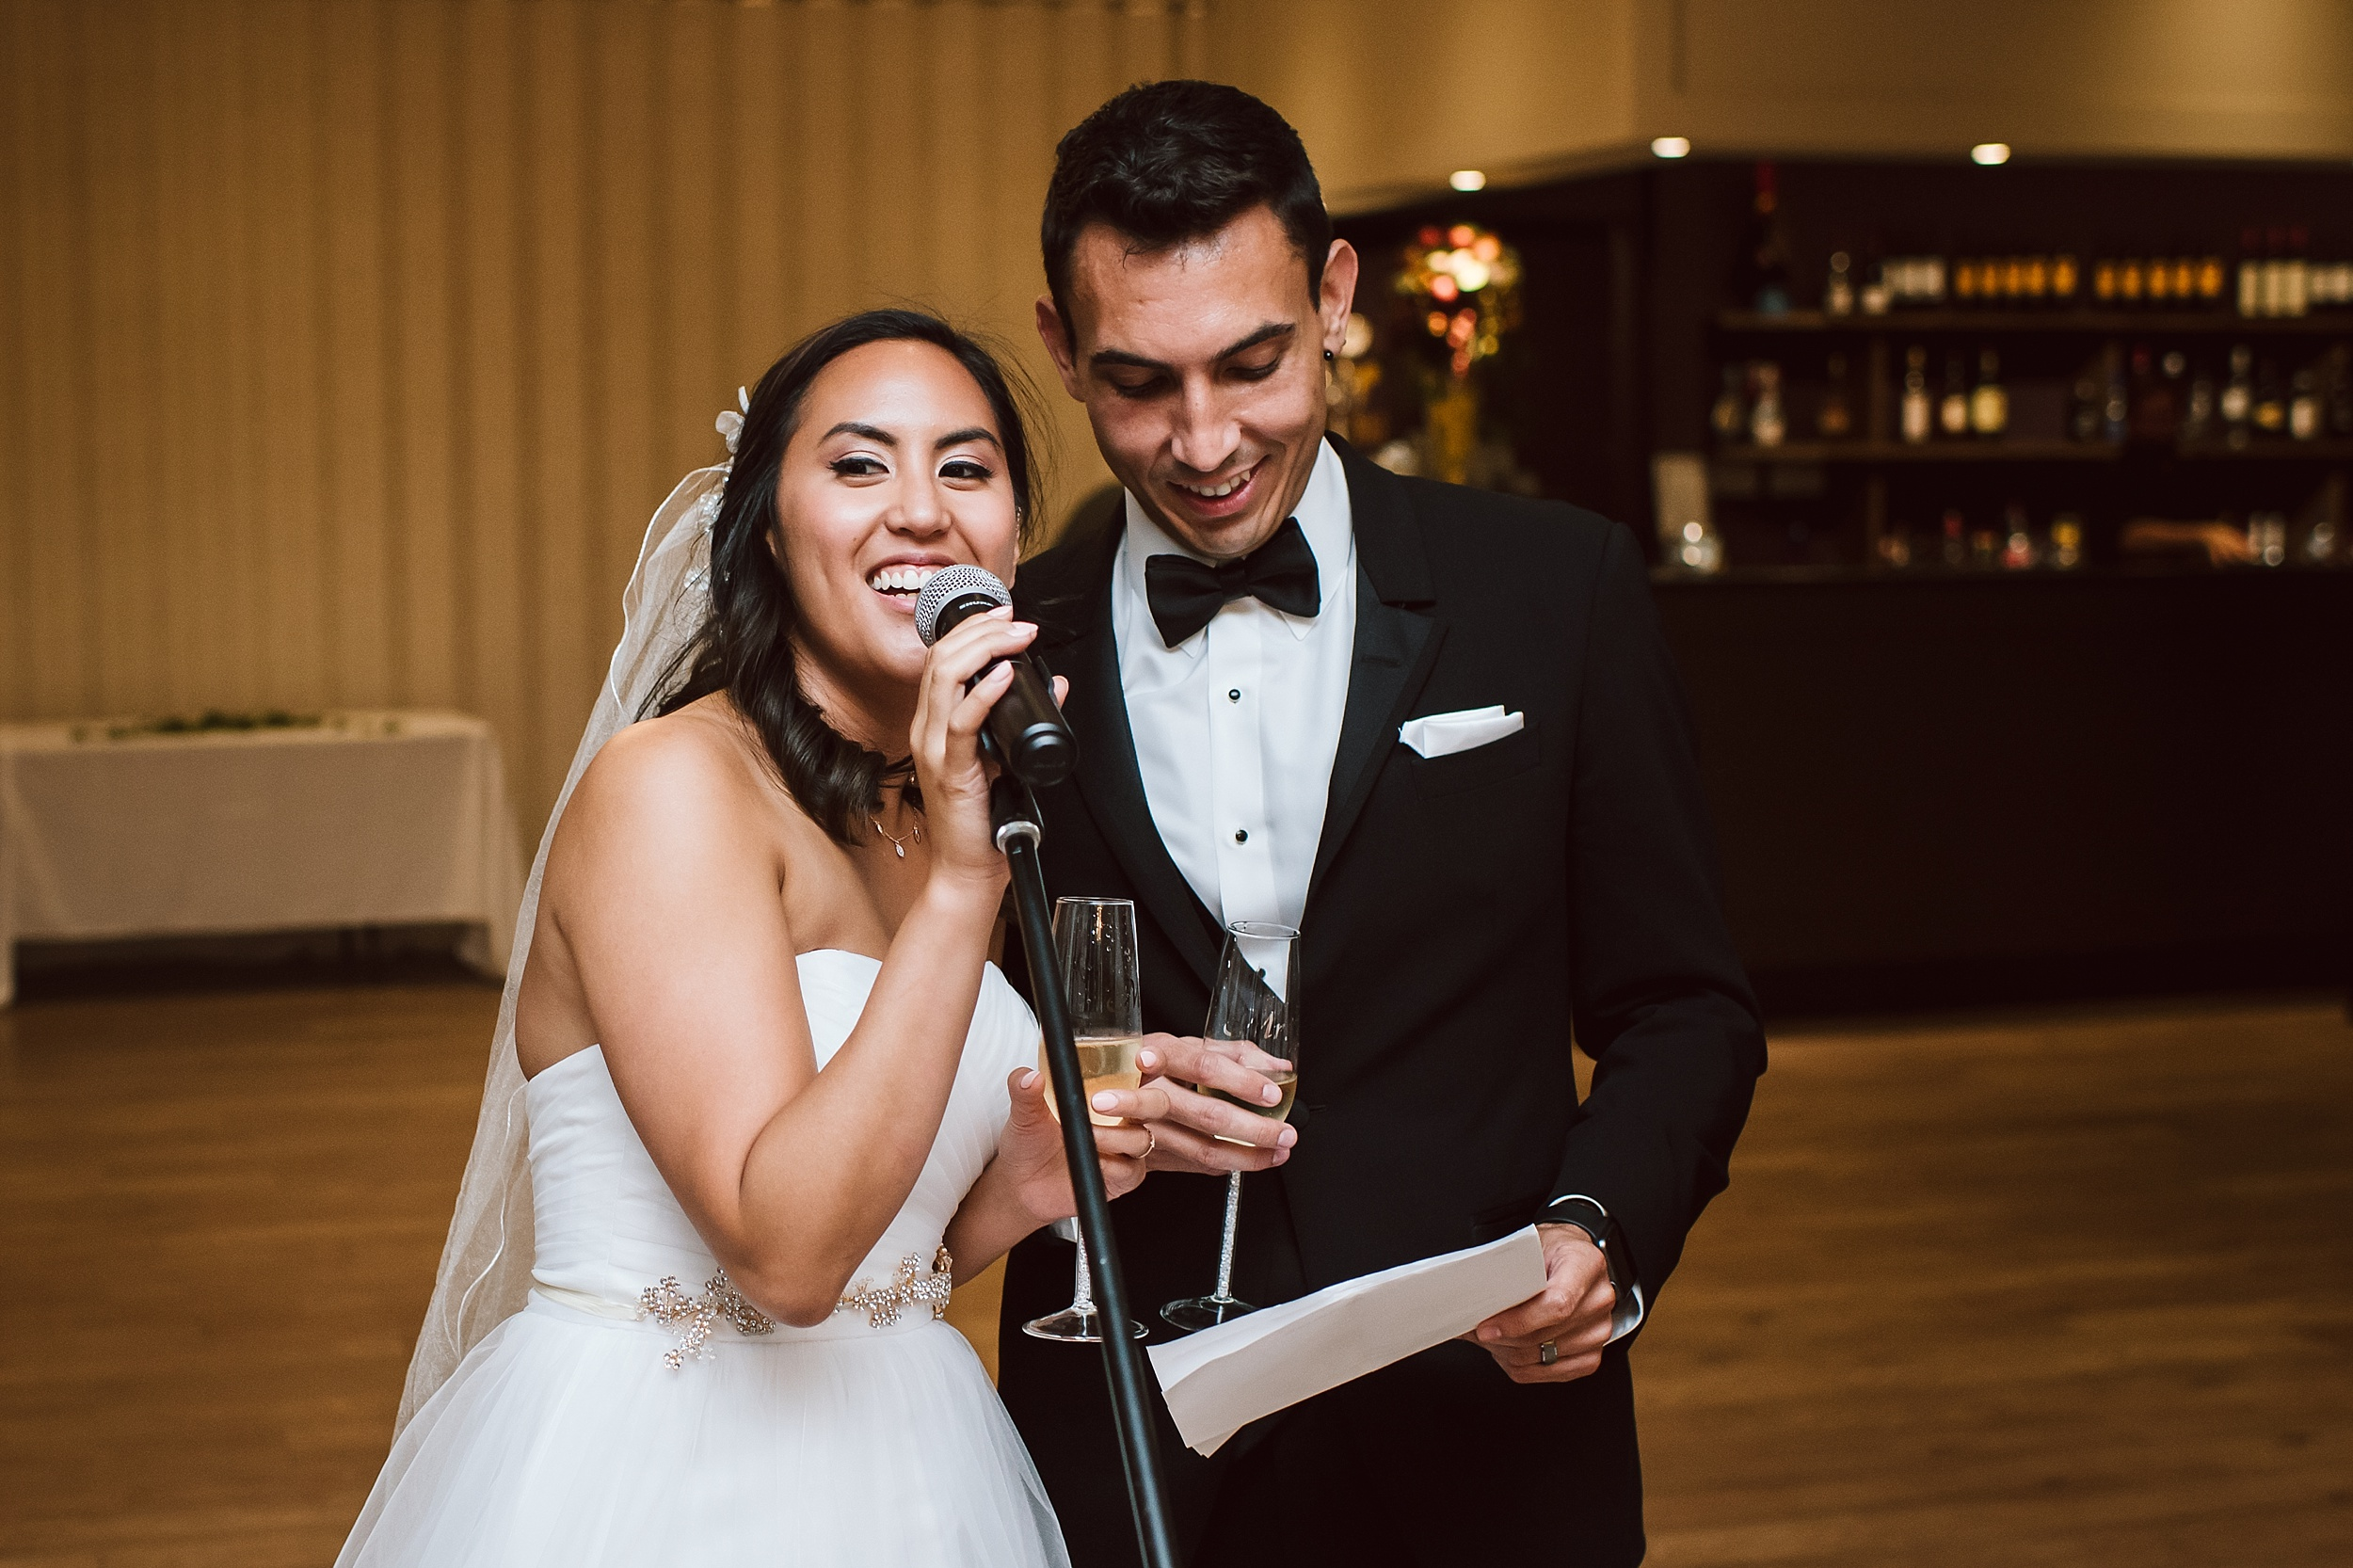 Toronto_Wedding_Photographer_Catholic_Portuguese_0099.jpg